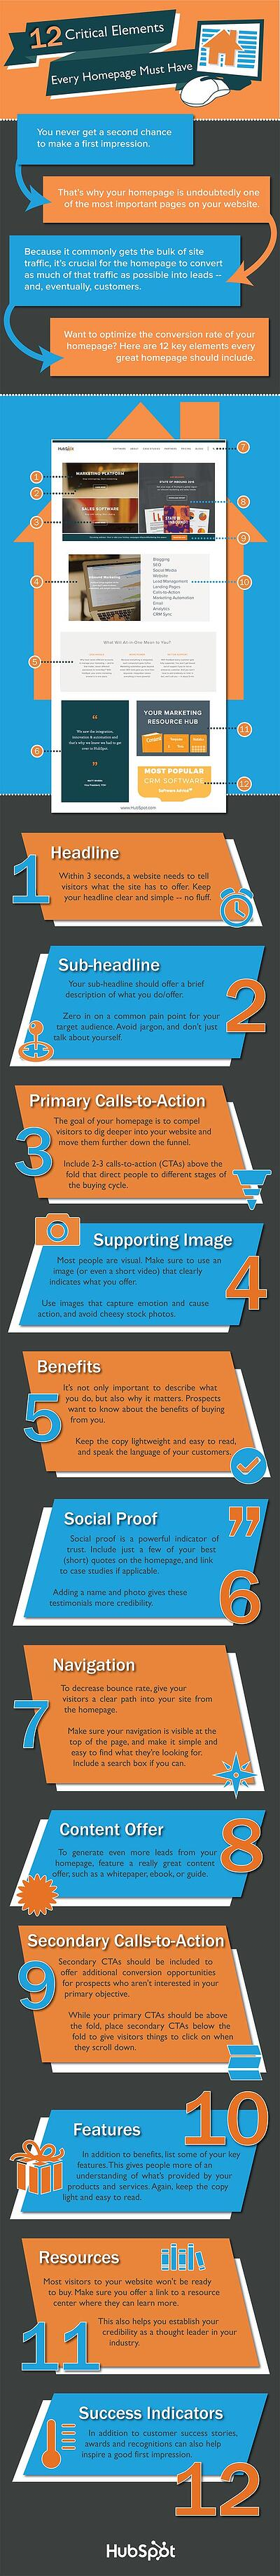 12 critical elements for a website homepage infographic